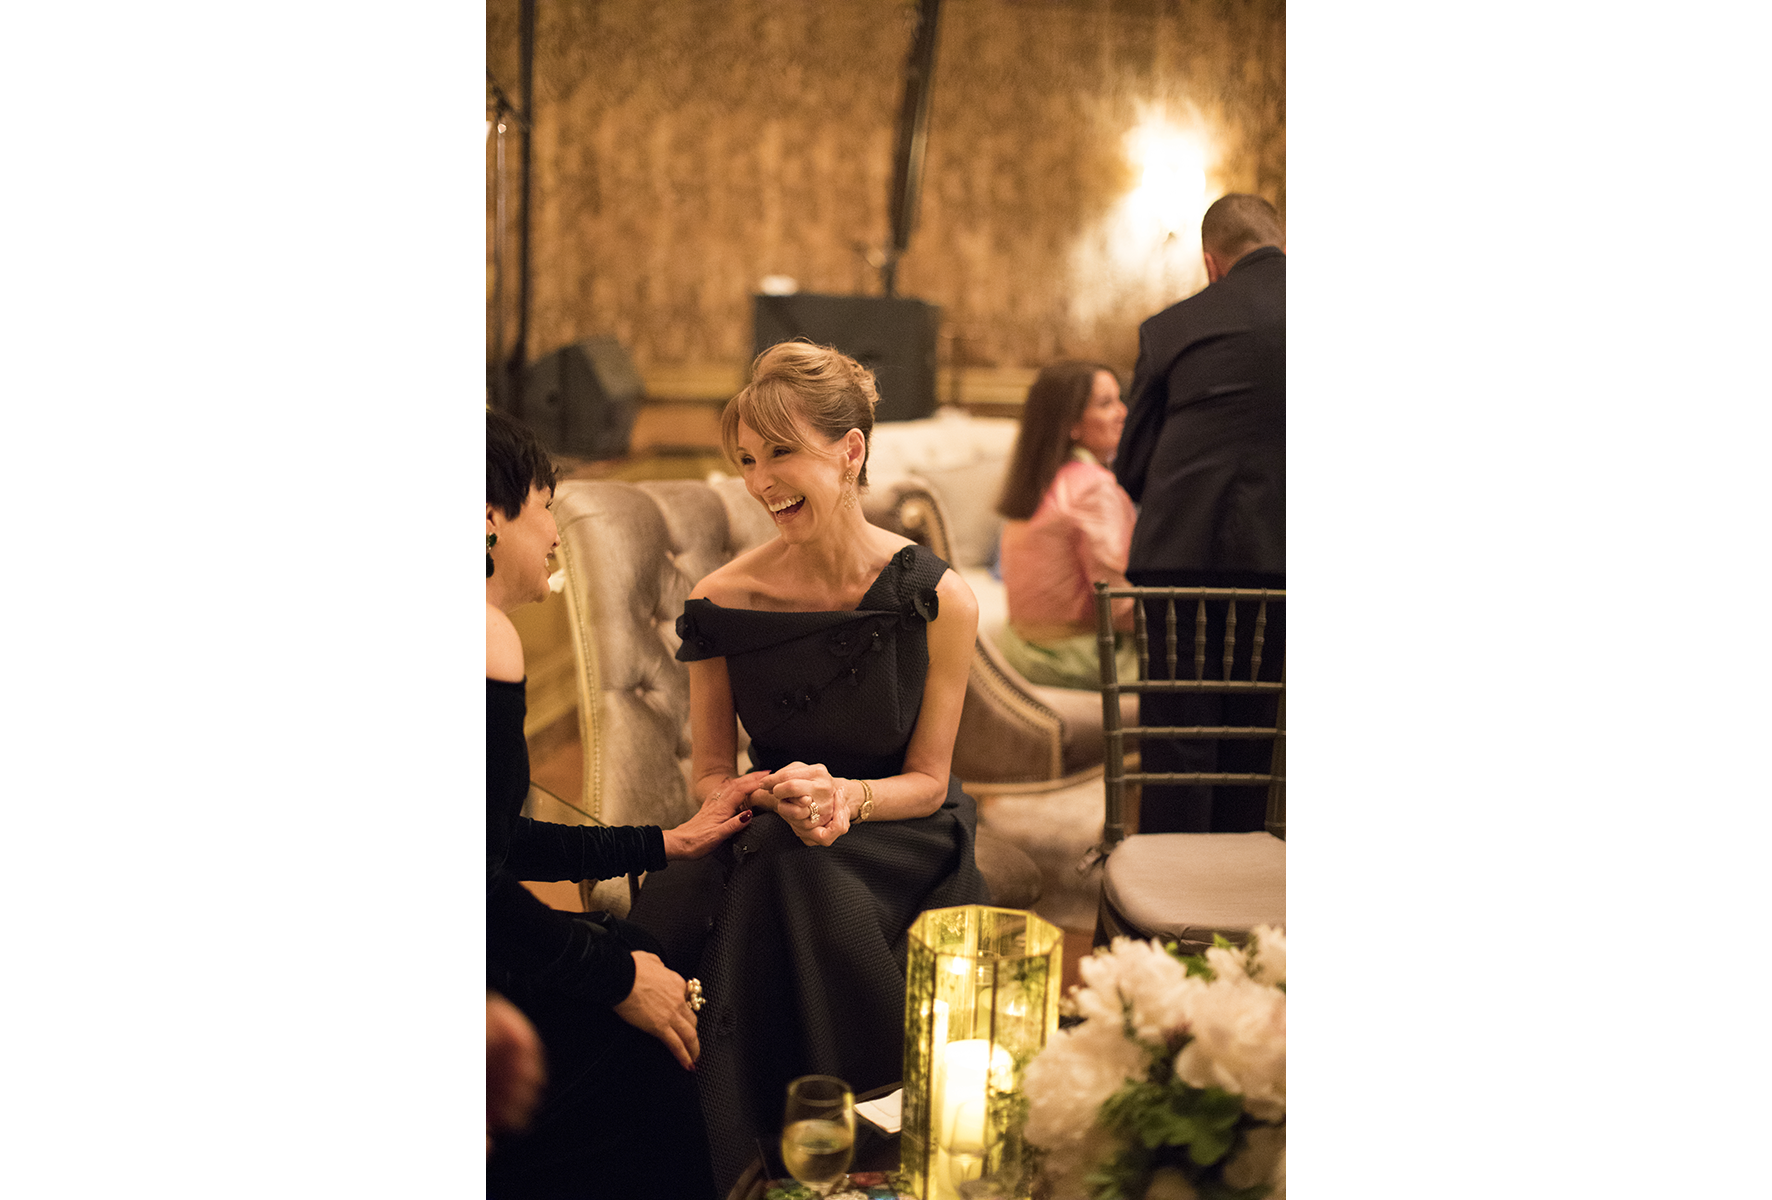 raquelreis_wedding_photography_frickcollection_024.png